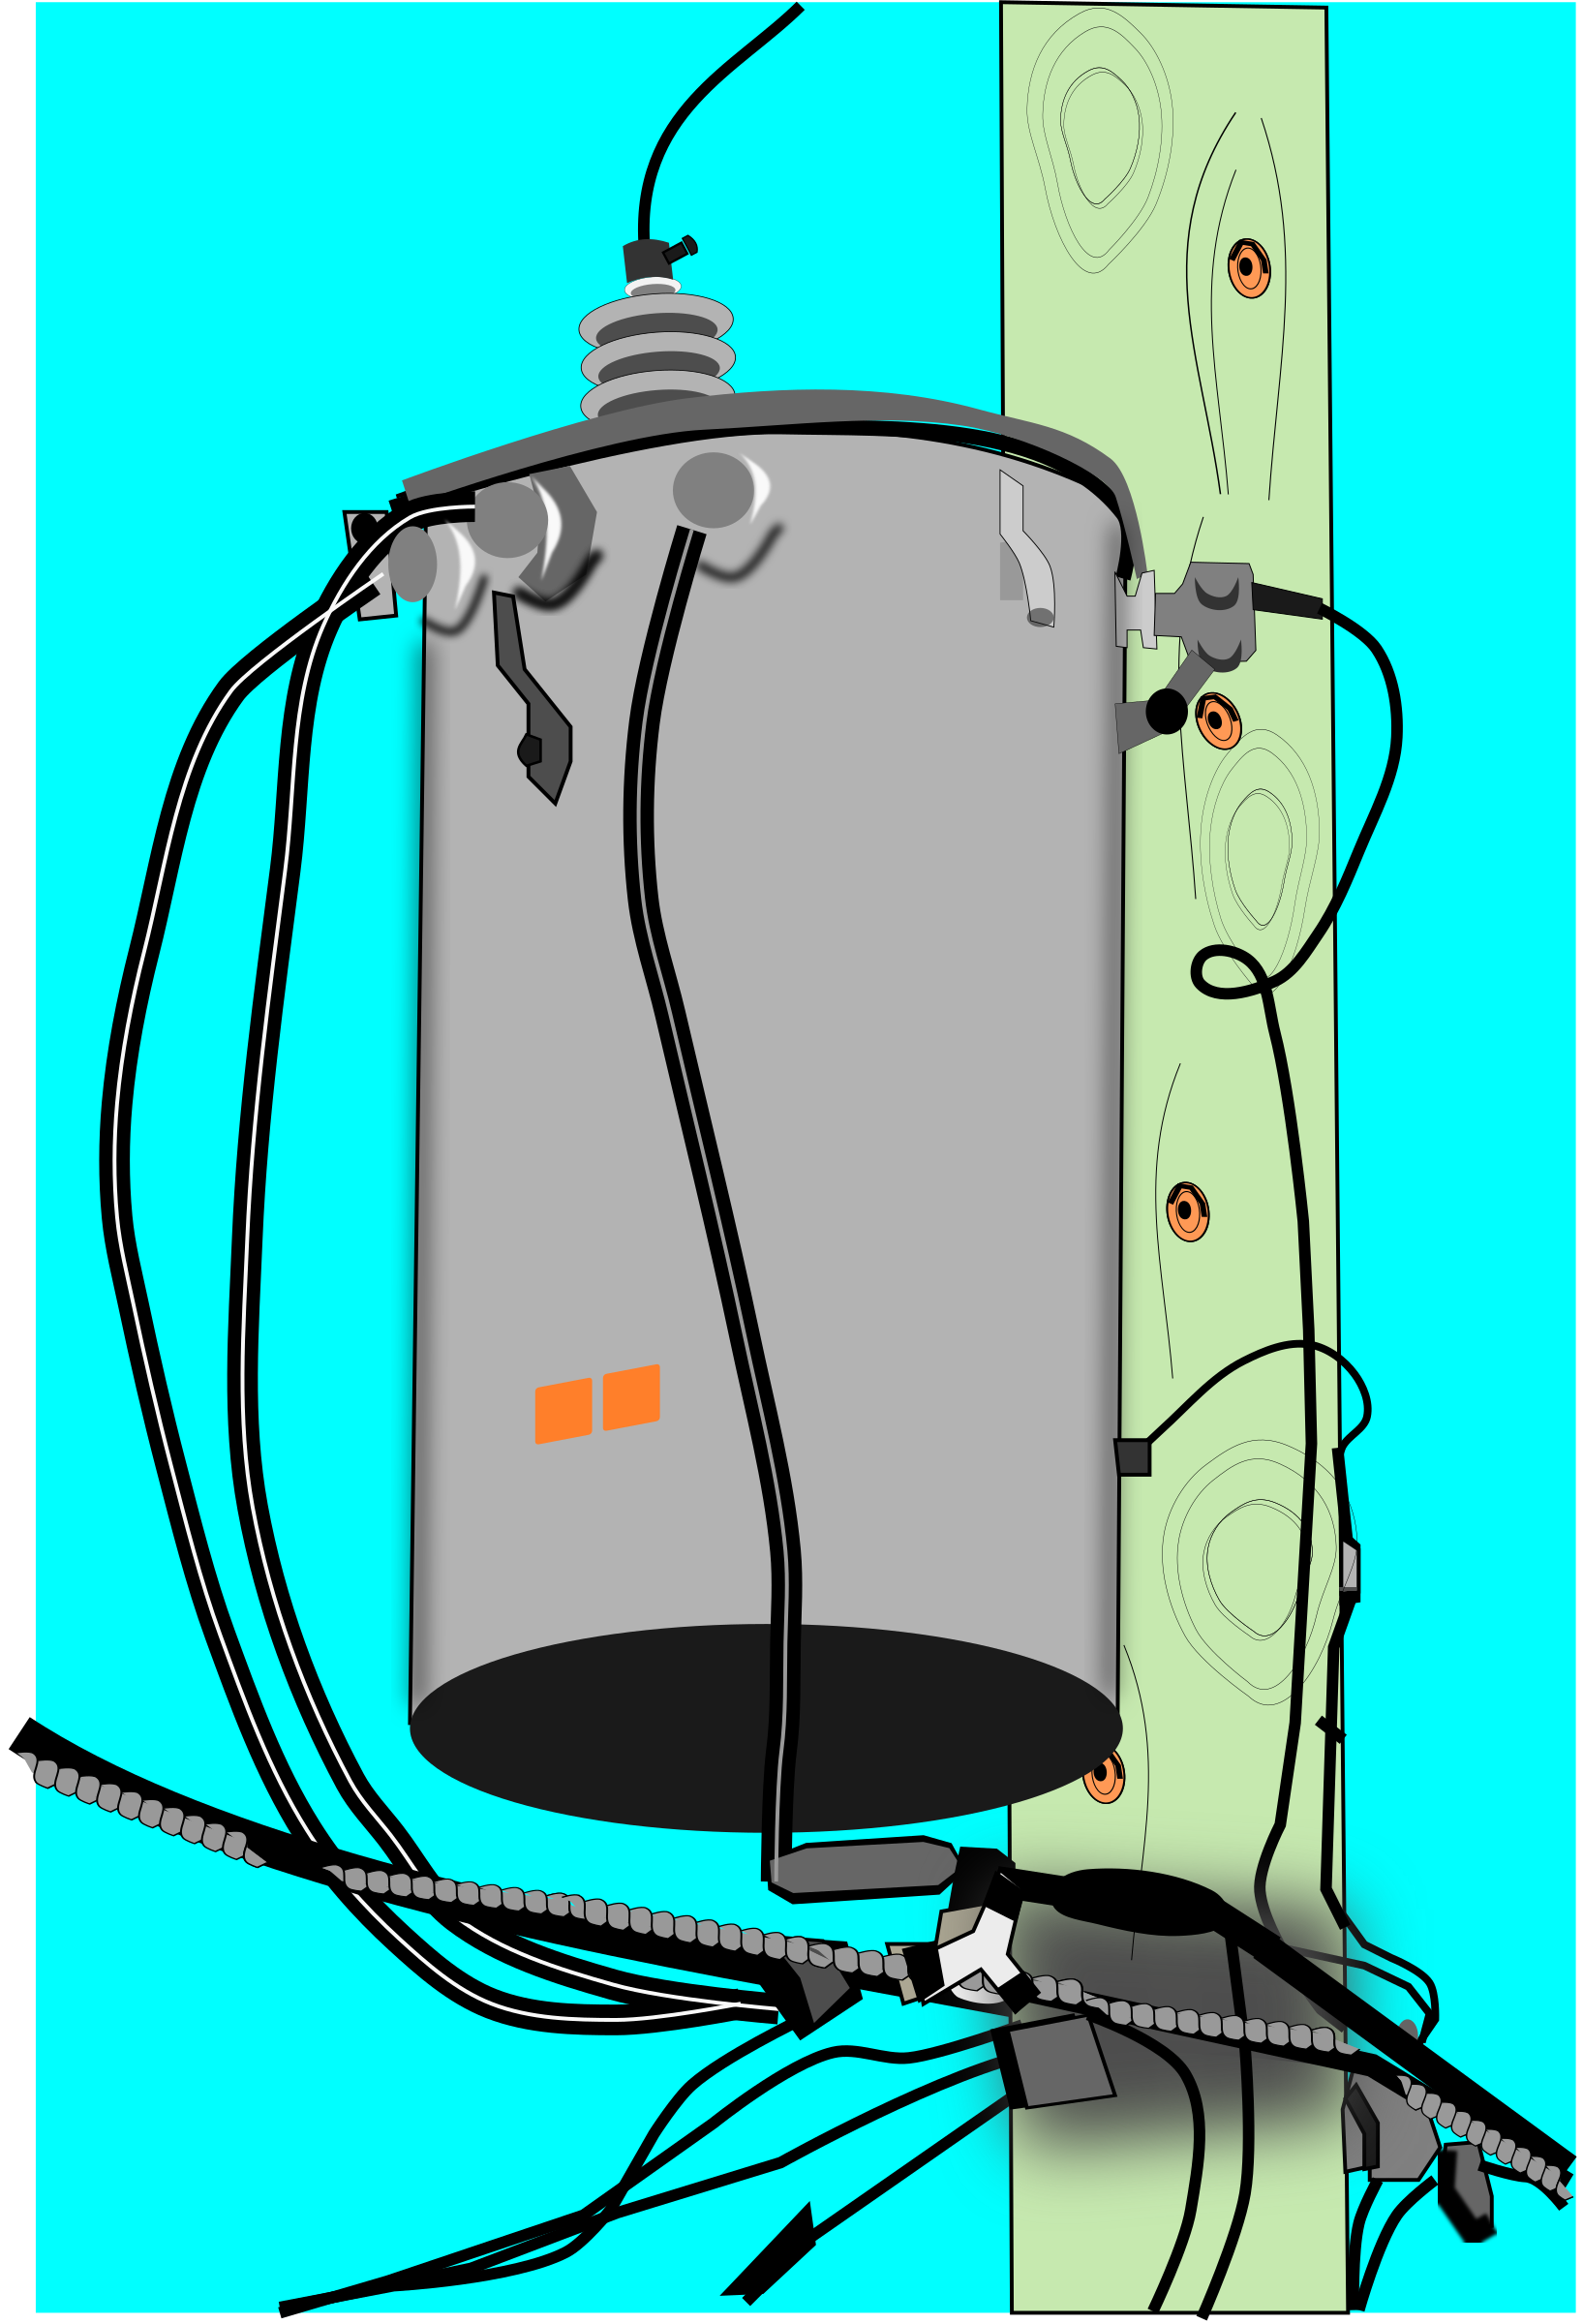 Electric Utility Transformer by algotruneman